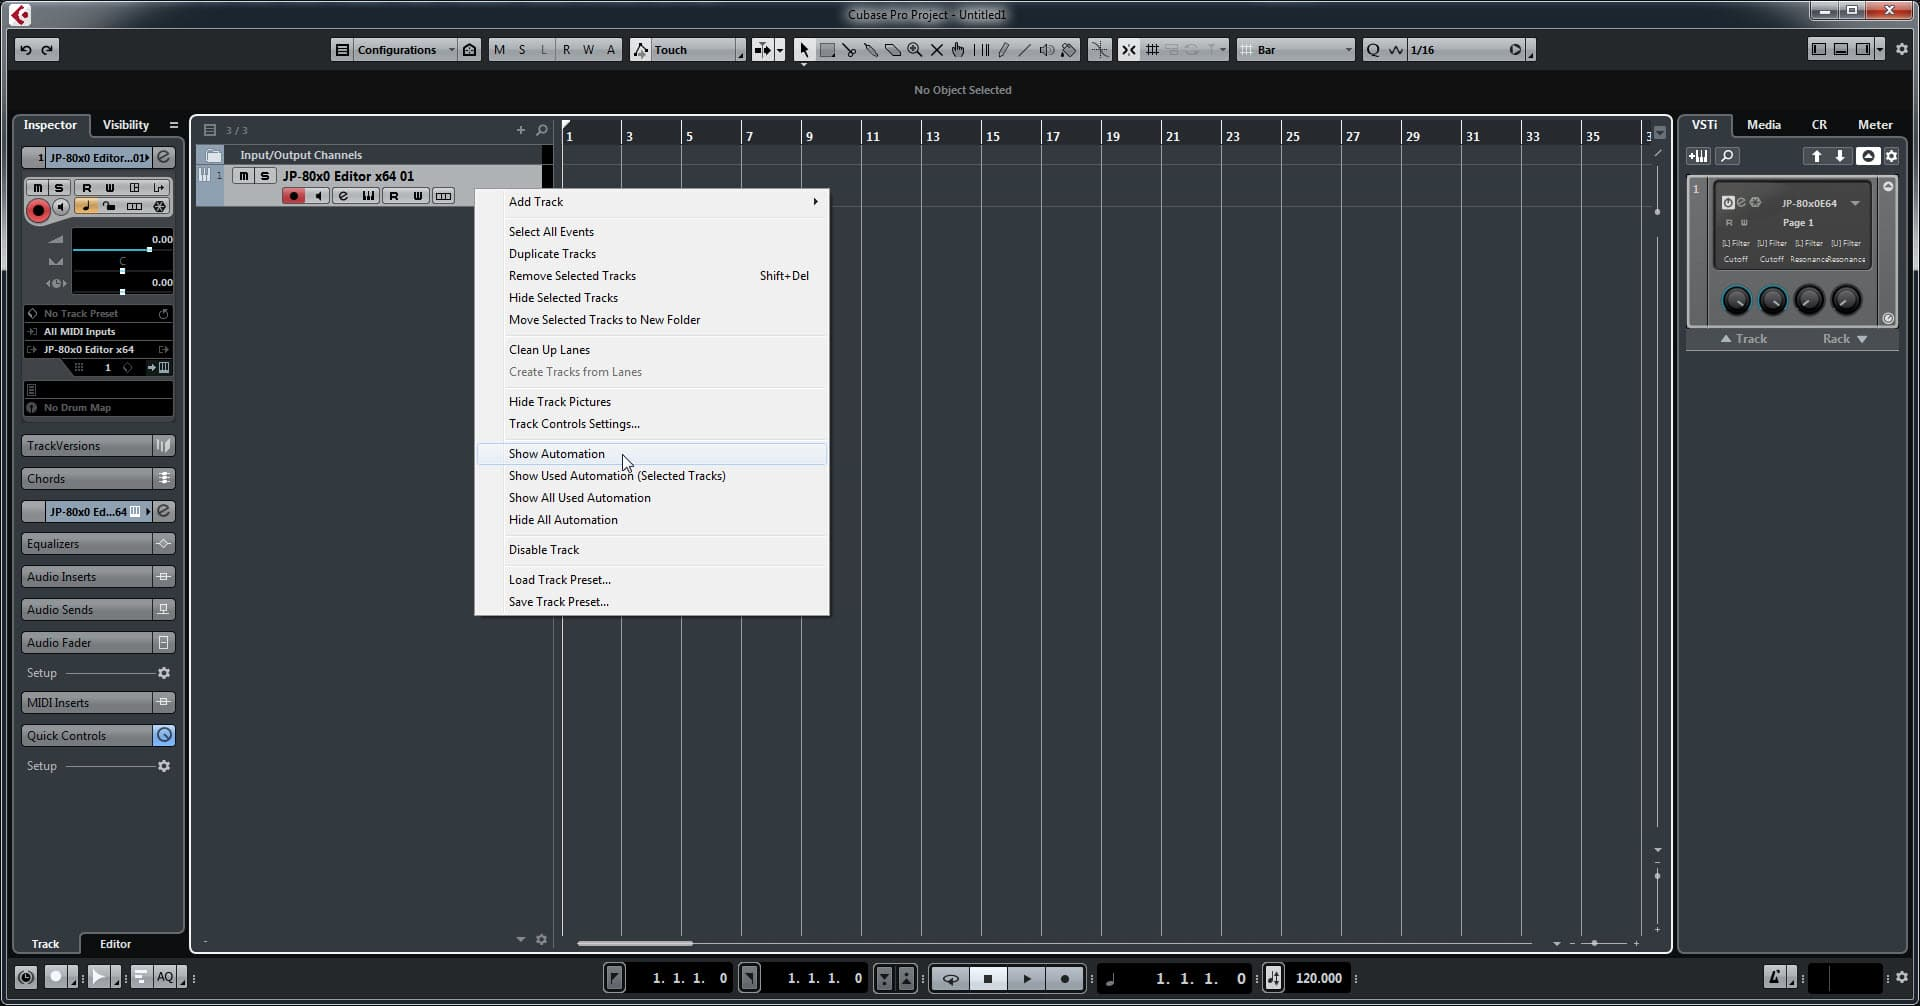 Steinberg Cubase Config - Show Instrument Automation